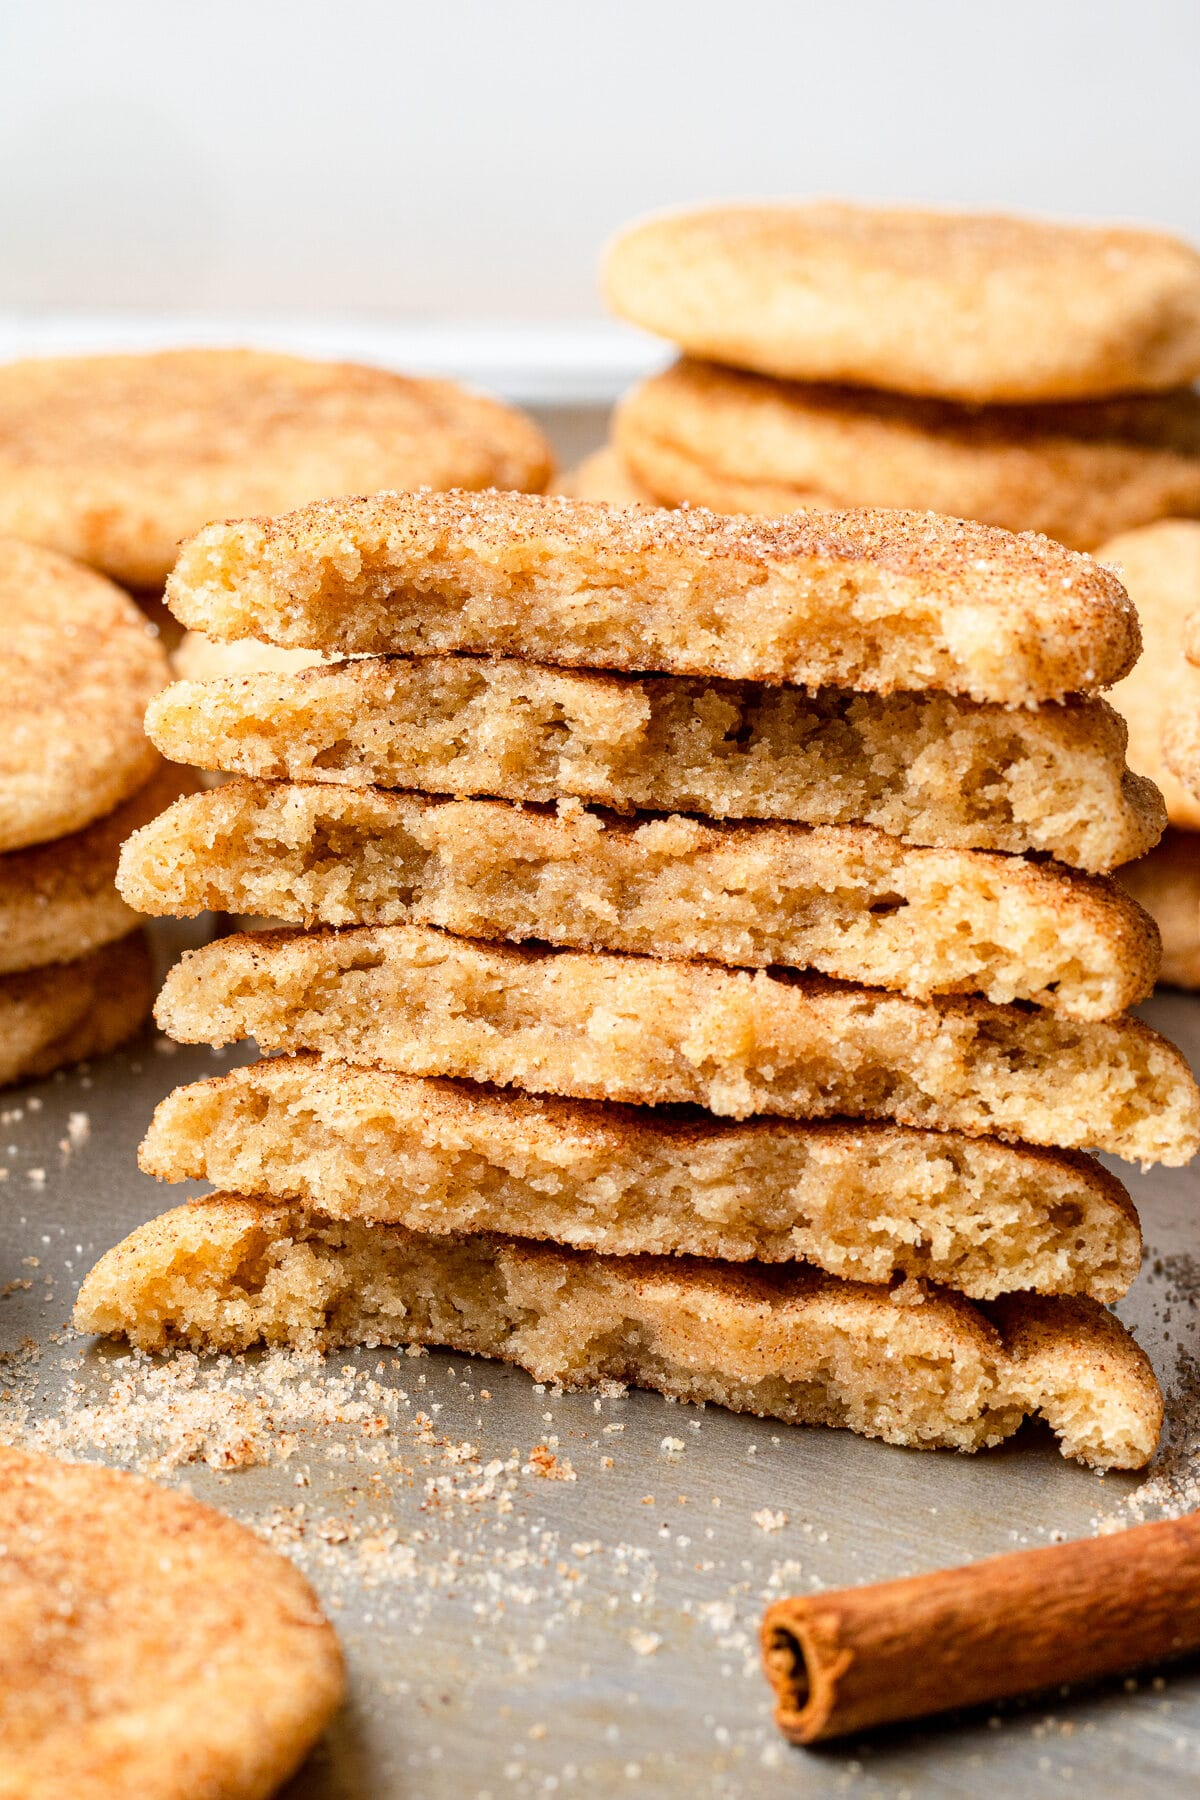 snickerdoodles stacked on top of each other and split in half with more cookies in the background and cinnamon sugar sprinkled around them